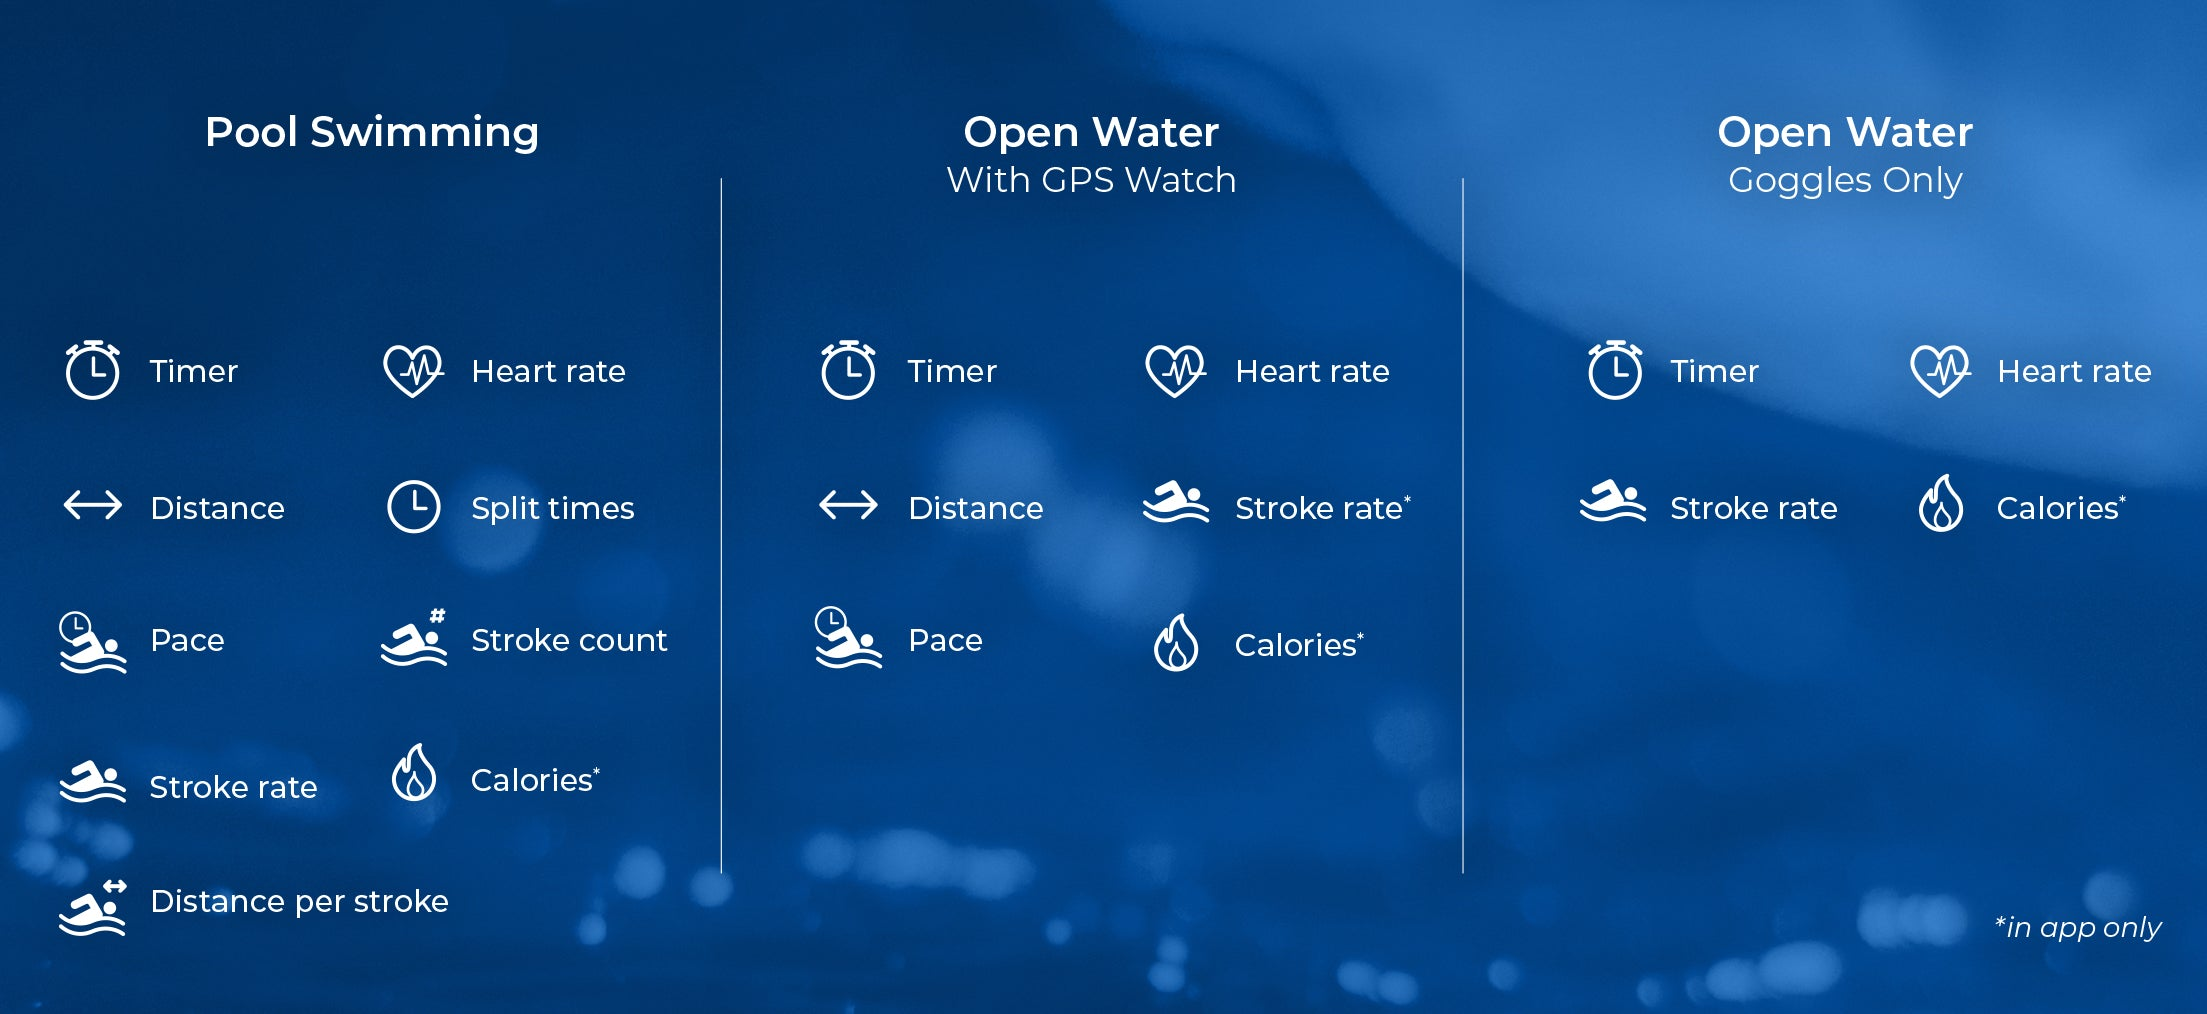 Summary of different types of metrics that can be displayed on your goggles.